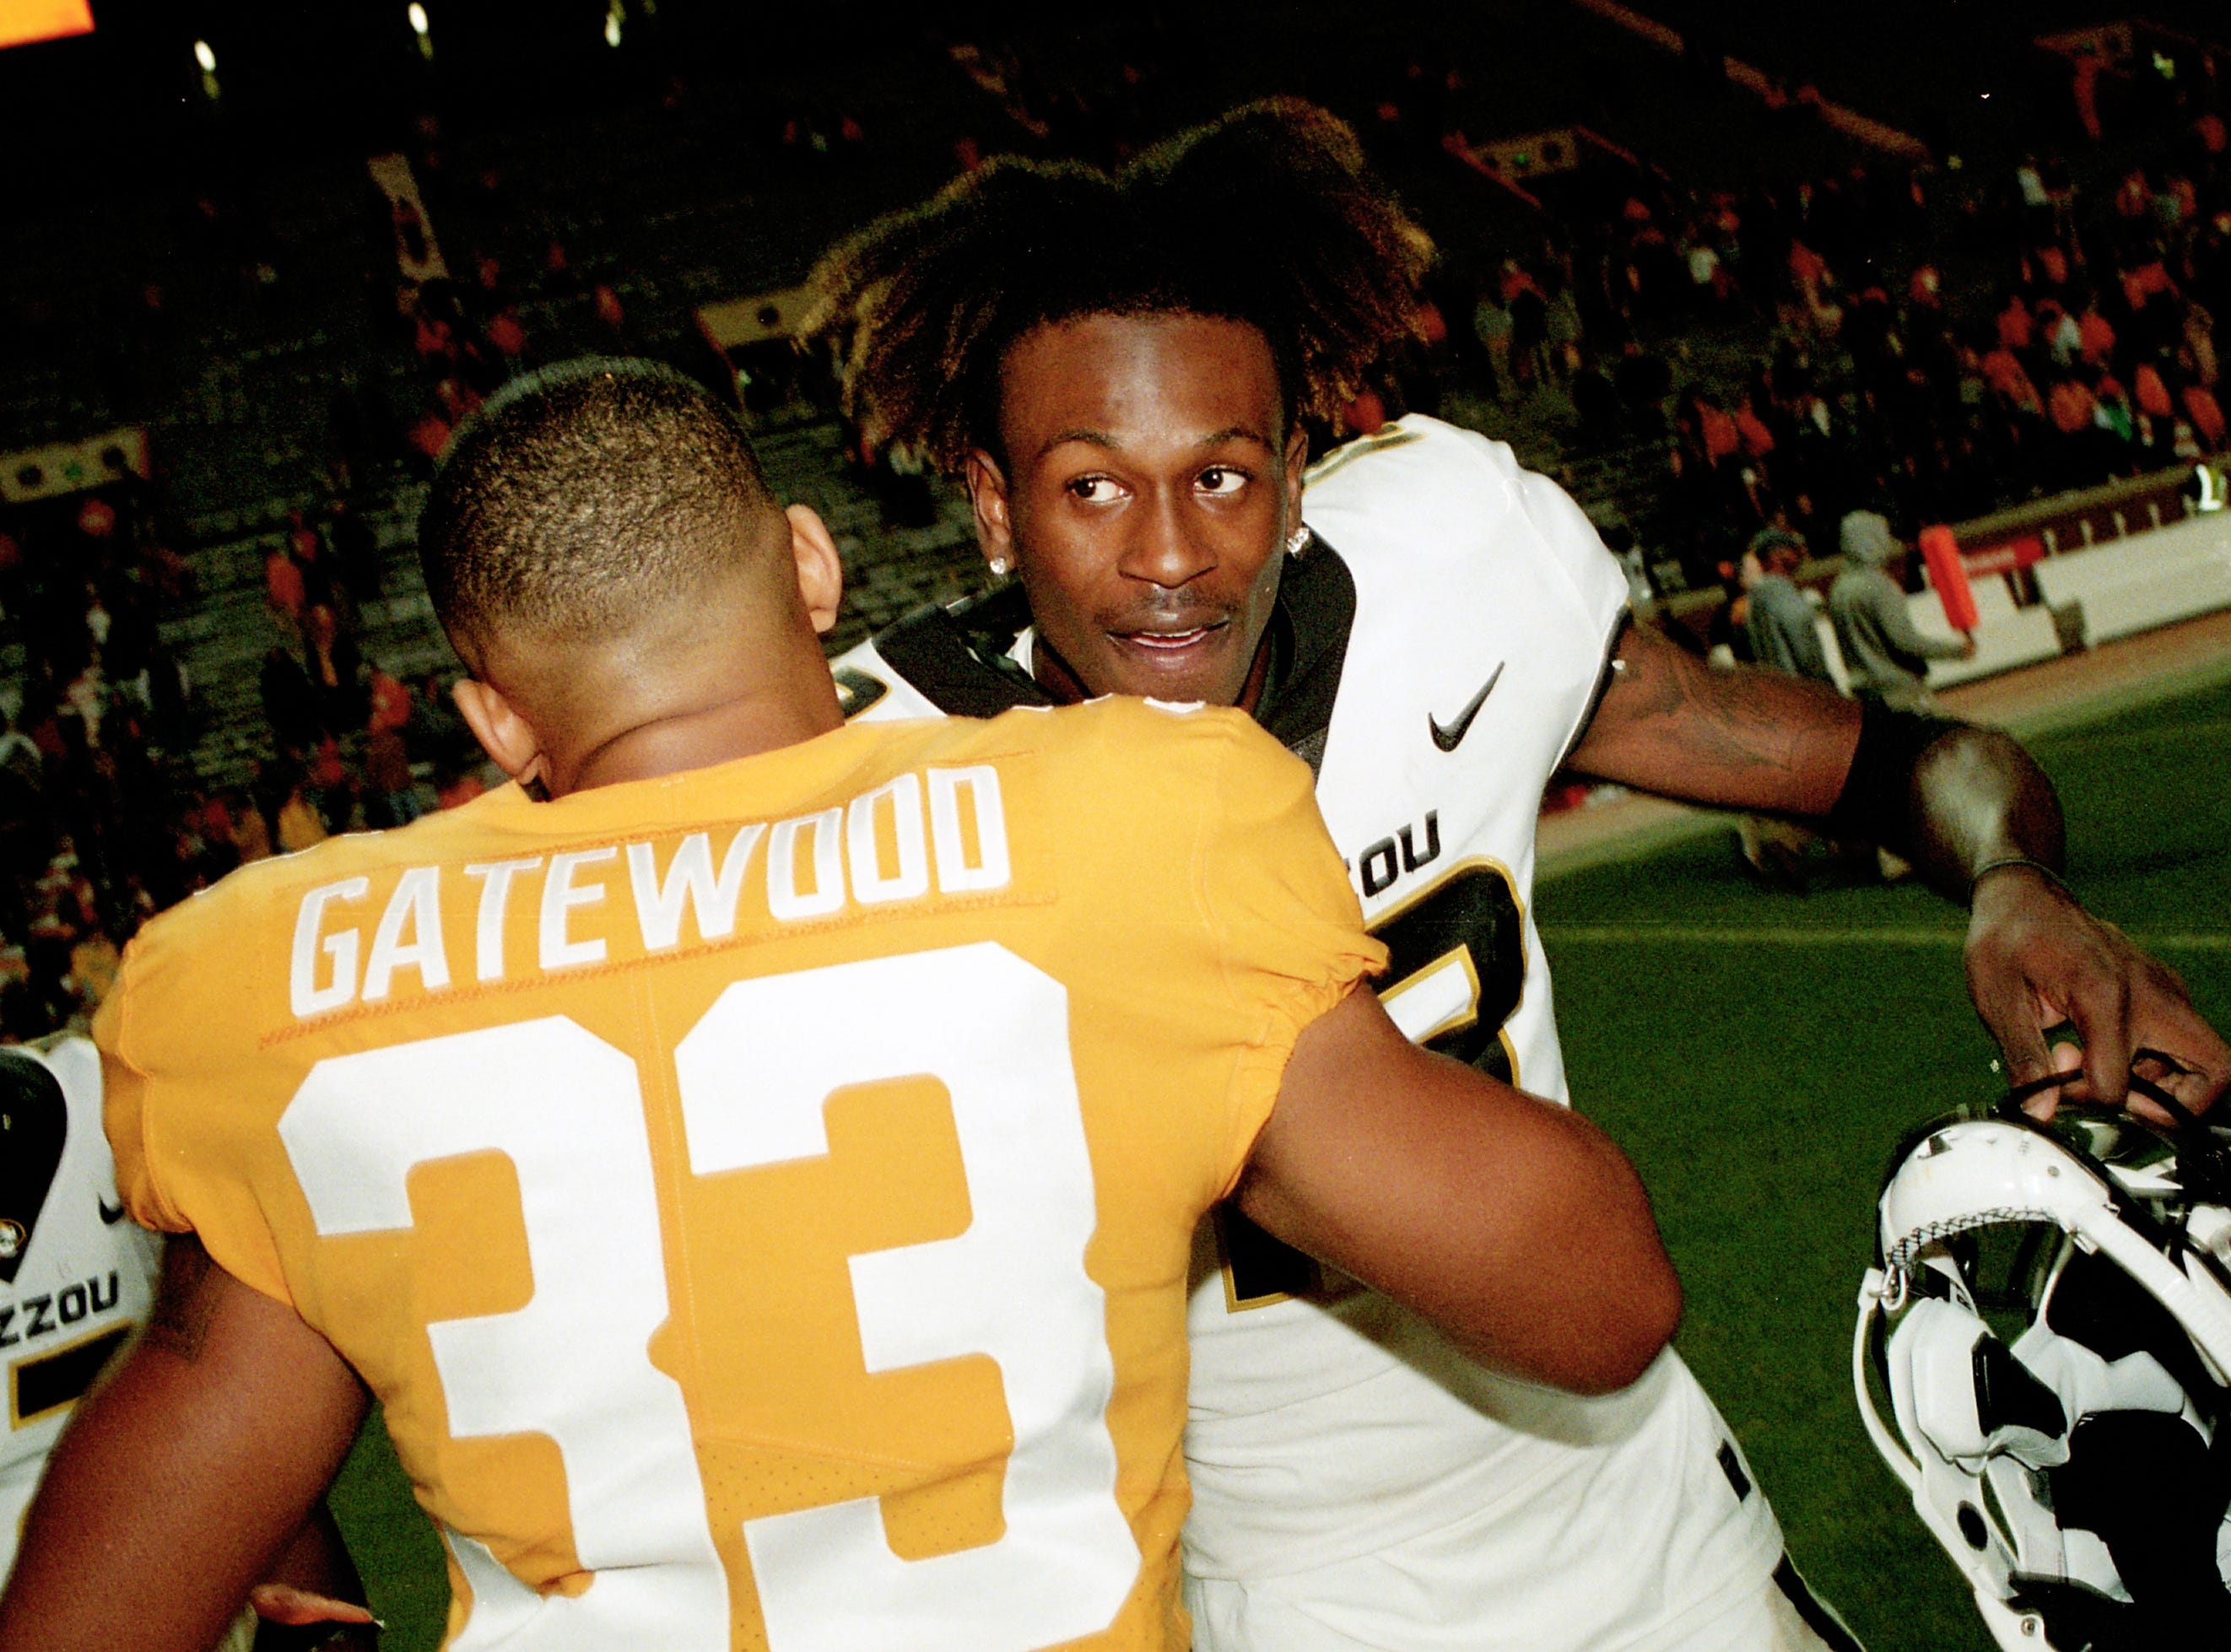 Missouri wide receiver Kam Scott (13) hugs Tennessee defensive back MaLeik Gatewood (33) during a game between Tennessee and Missouri at Neyland Stadium in Knoxville, Tennessee on Saturday, November 17, 2018.